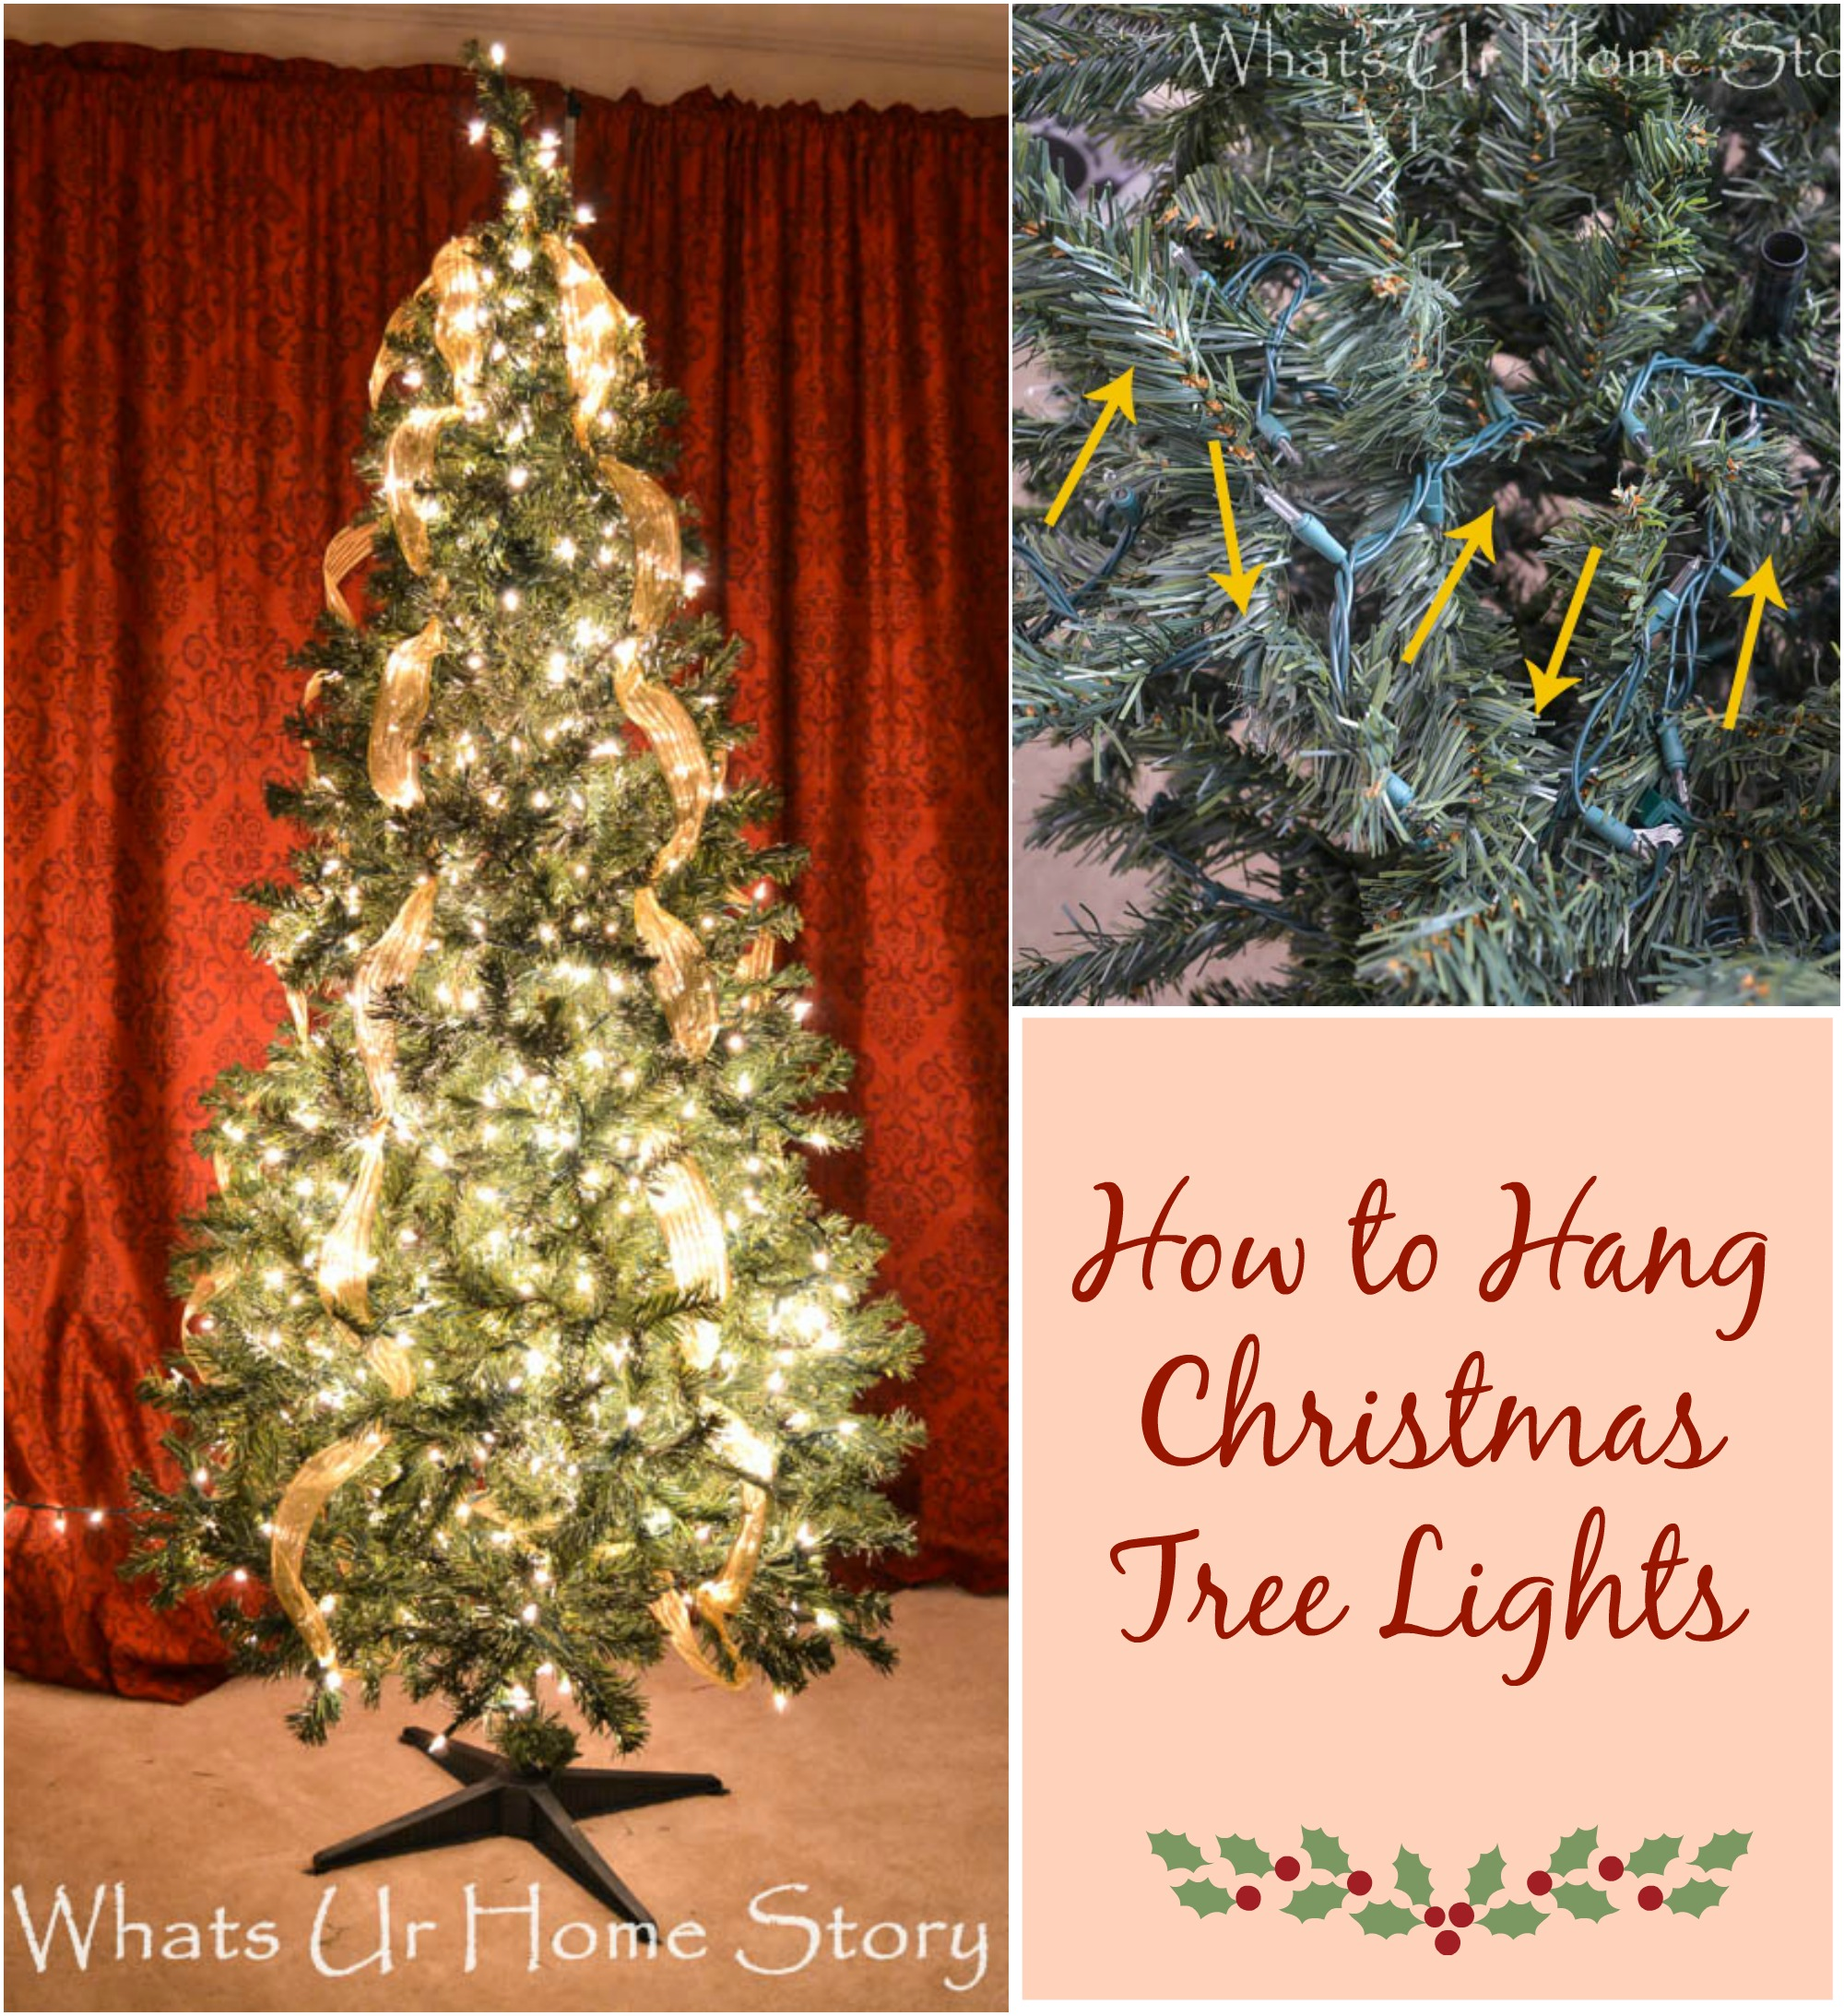 How To Hang Christmas Tree